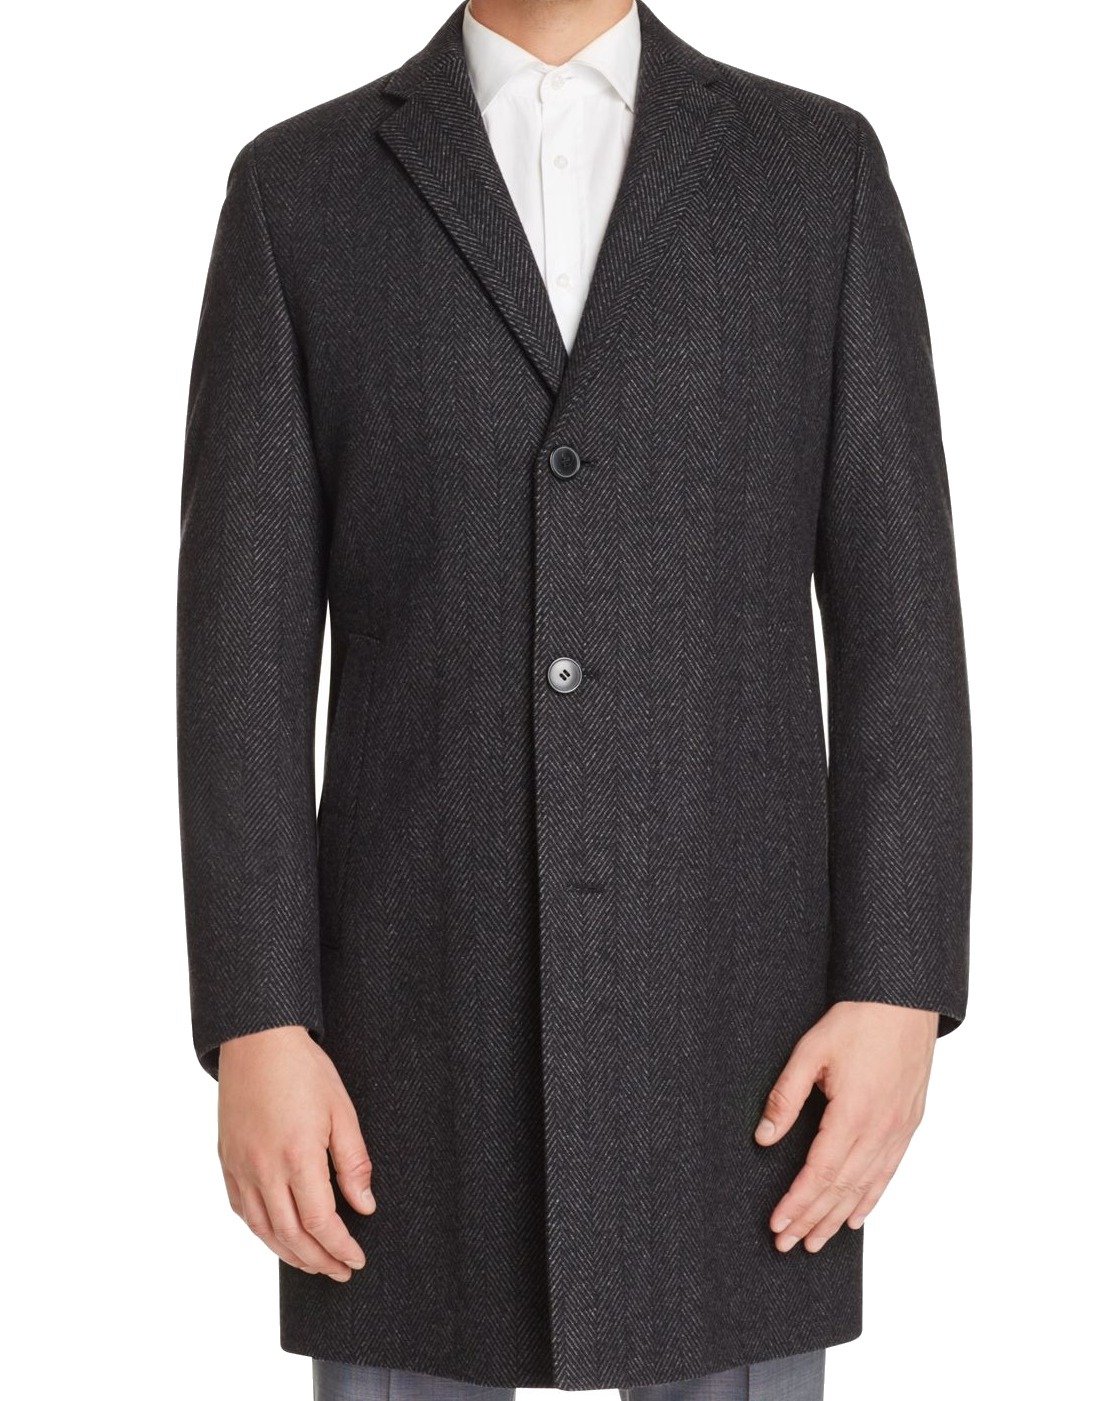 Hugo Boss New Charcoal Gray Mens Size 44R Herringbone Wool Coat by Mens Wool Coats